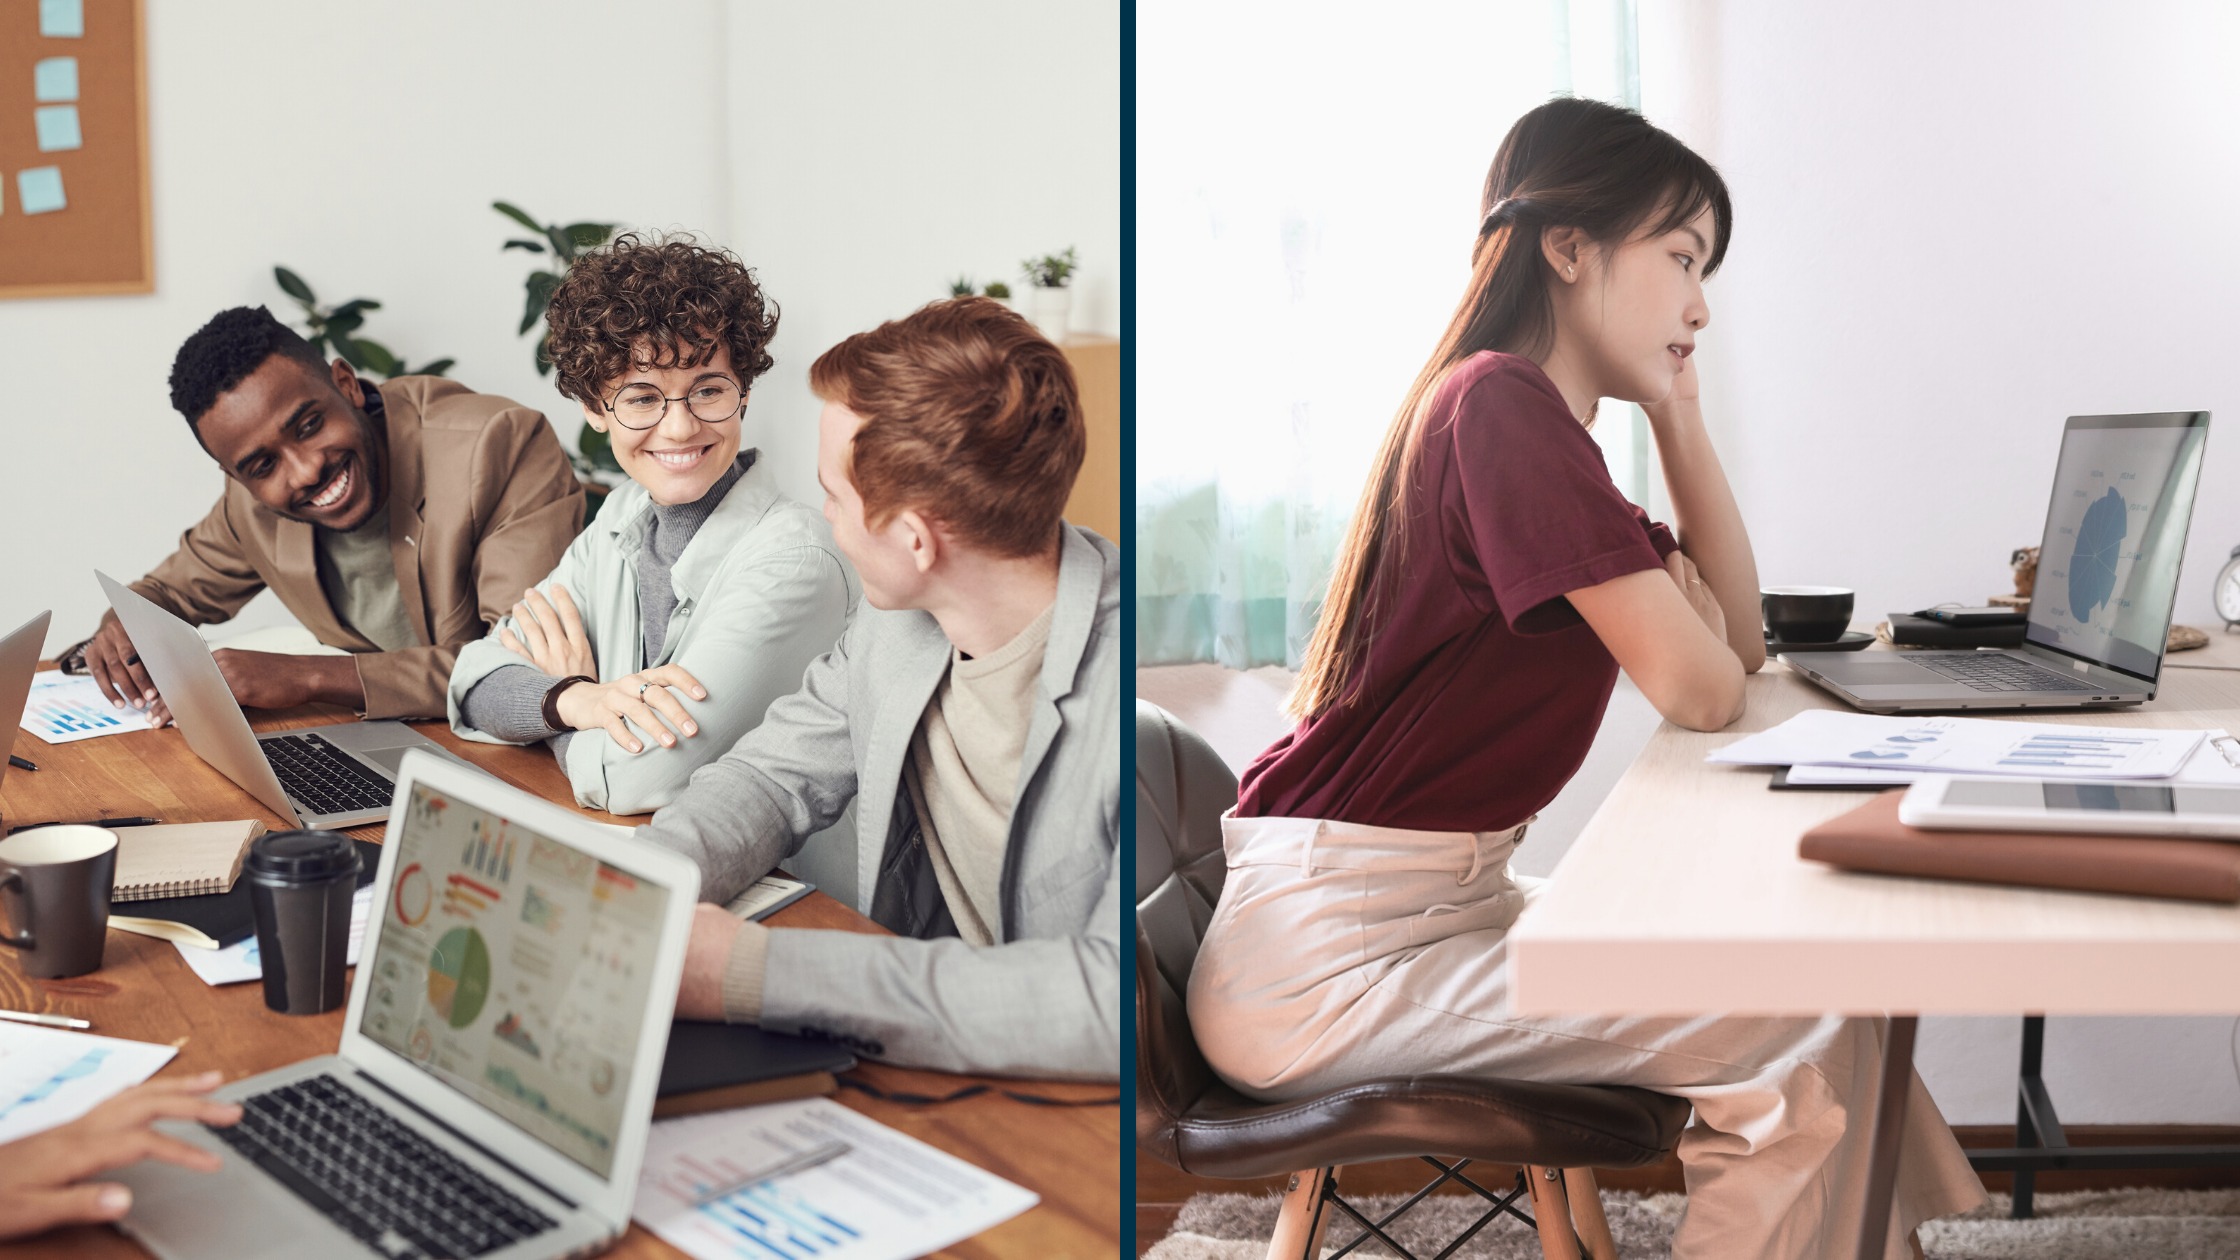 We created this guide to help businesses of all sizes ease their transition to a hybrid workplace.